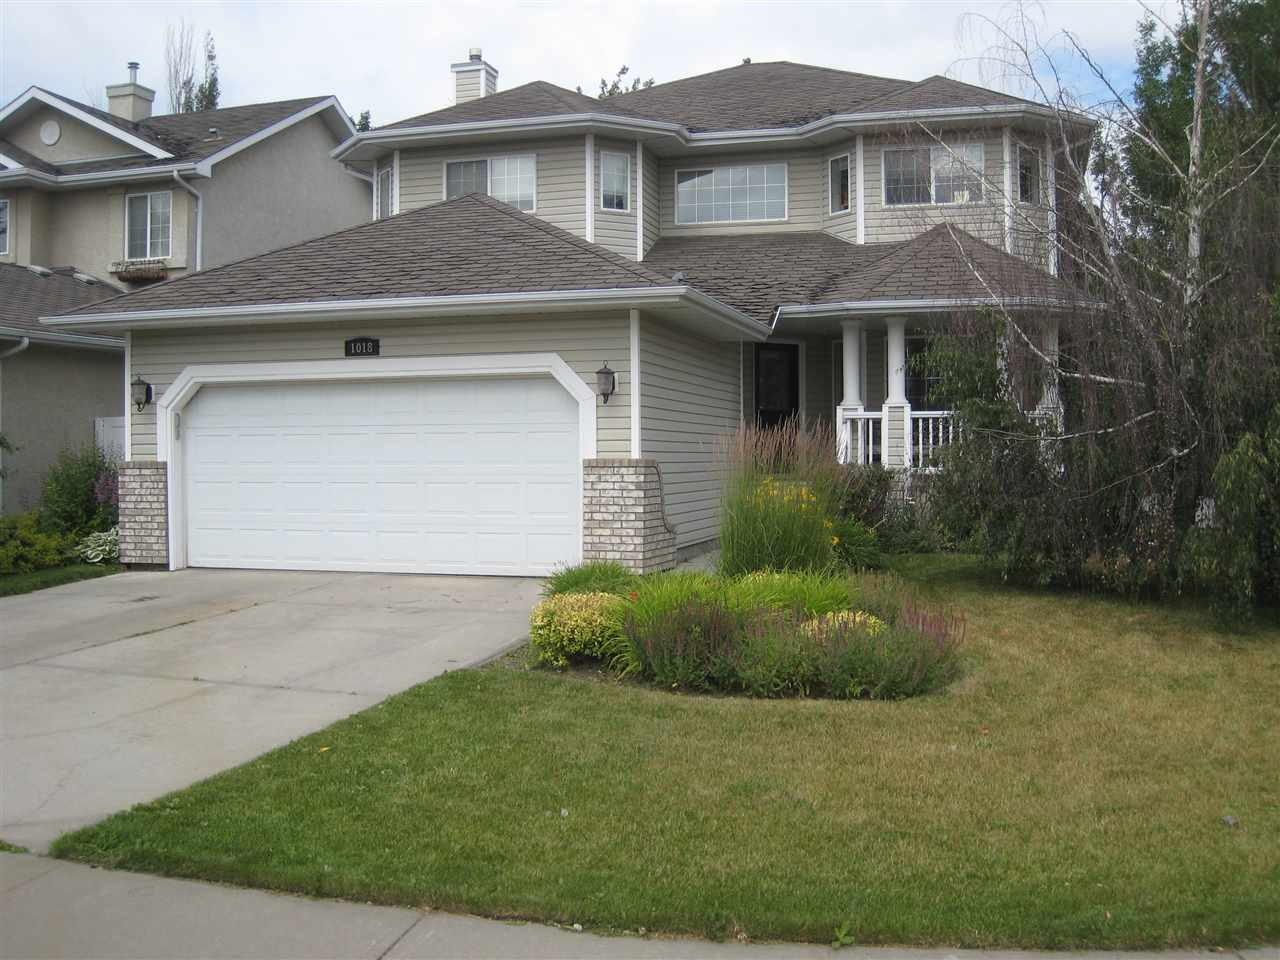 Main Photo: 1018 Ormsby Crescent NW in Edmonton: Zone 20 House for sale : MLS® # E4074263